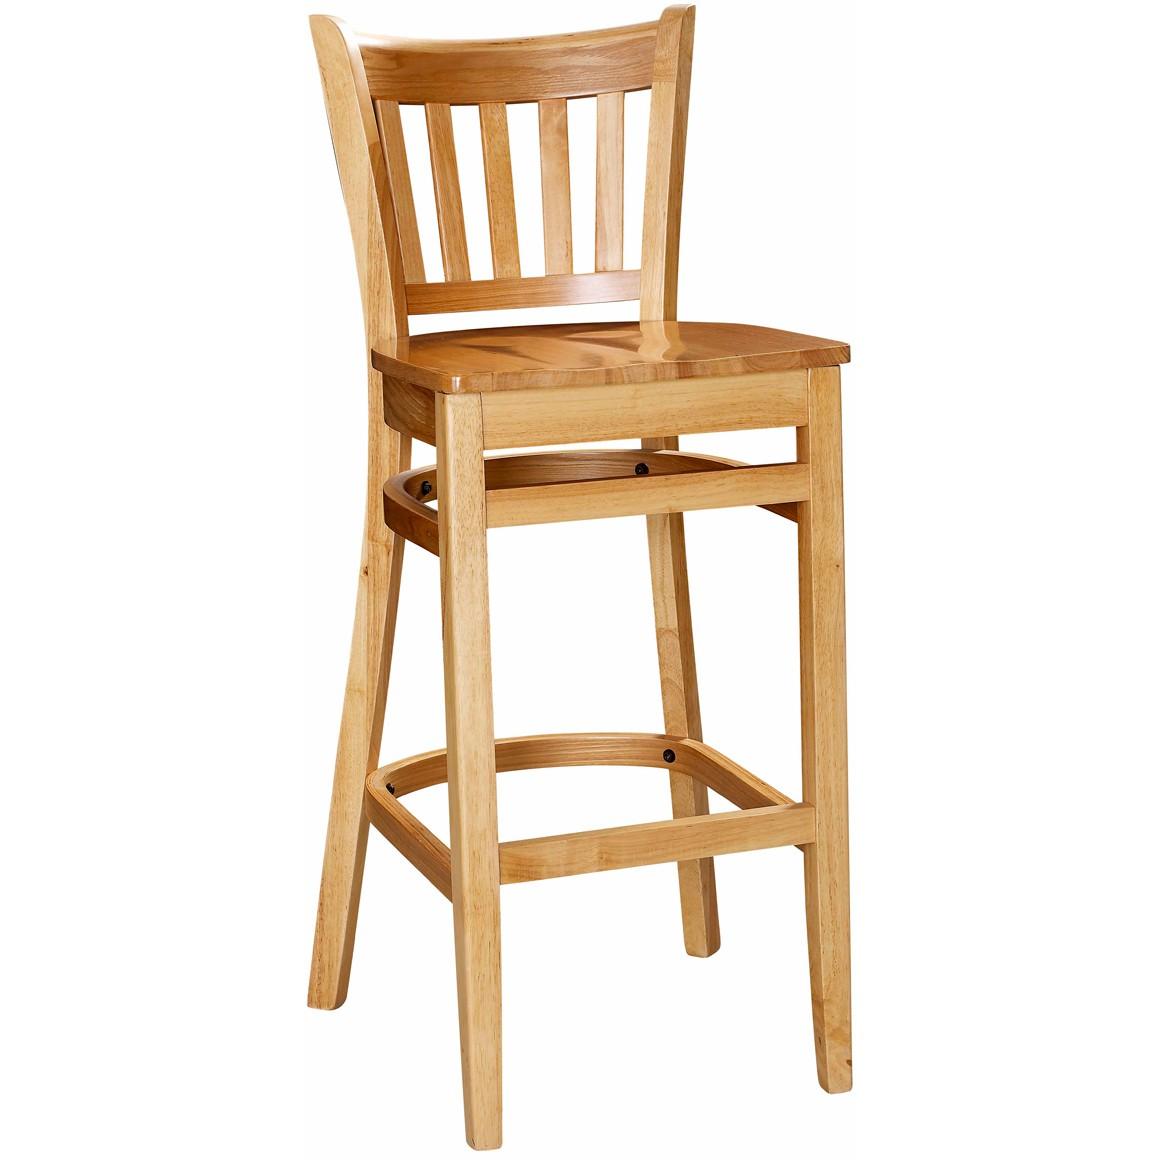 Wood Bar Chairs Vertical Slat Wood Bar Stool For Sale Restaurant Barstools